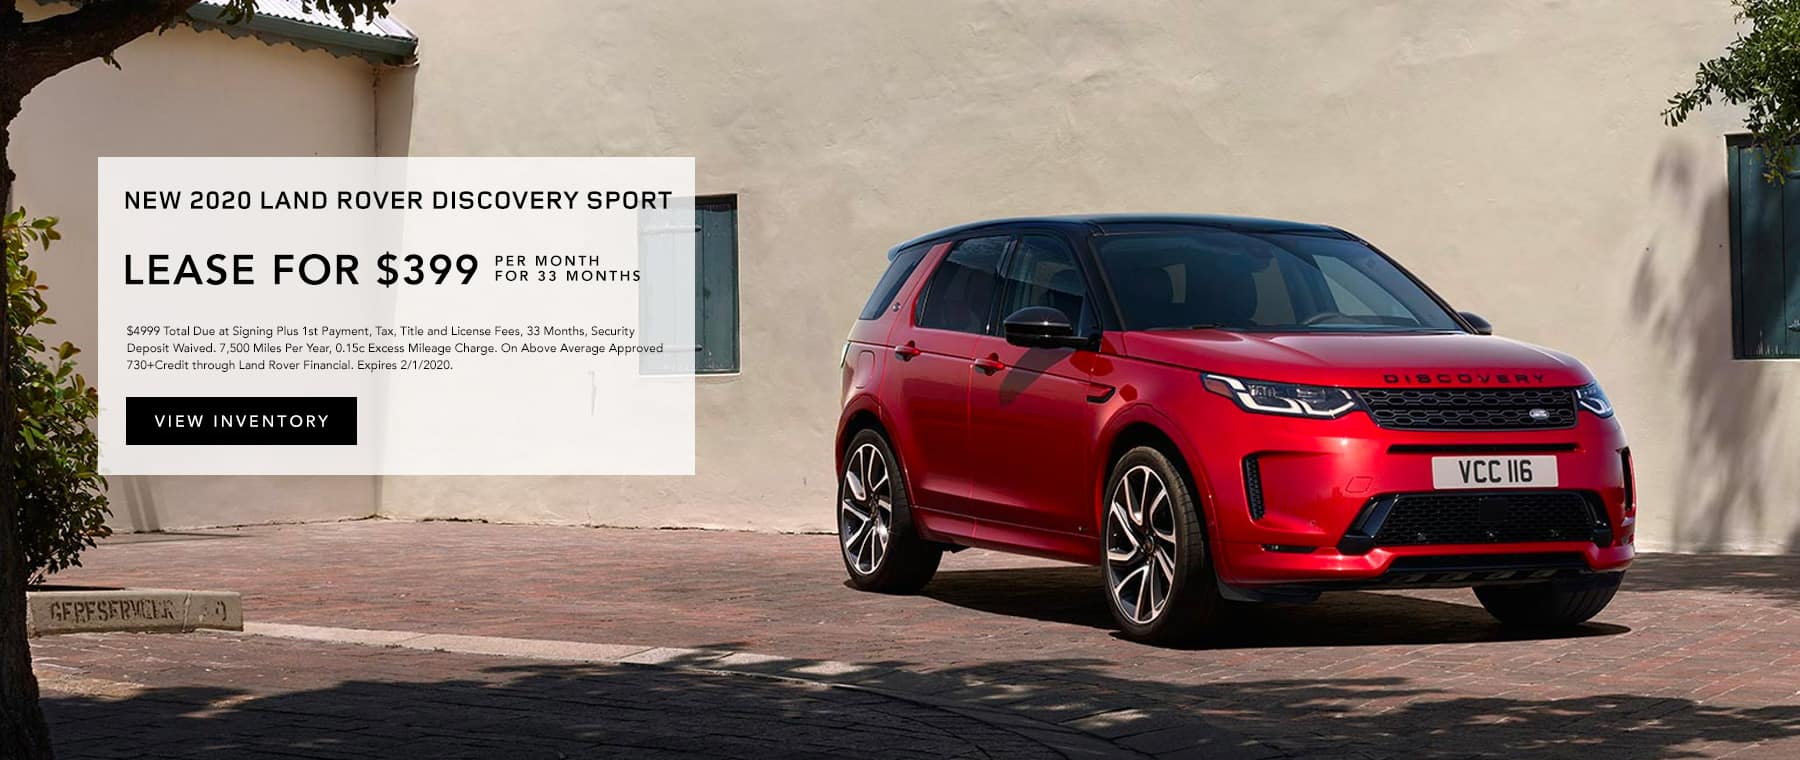 Lease 2020 Discovery Sport